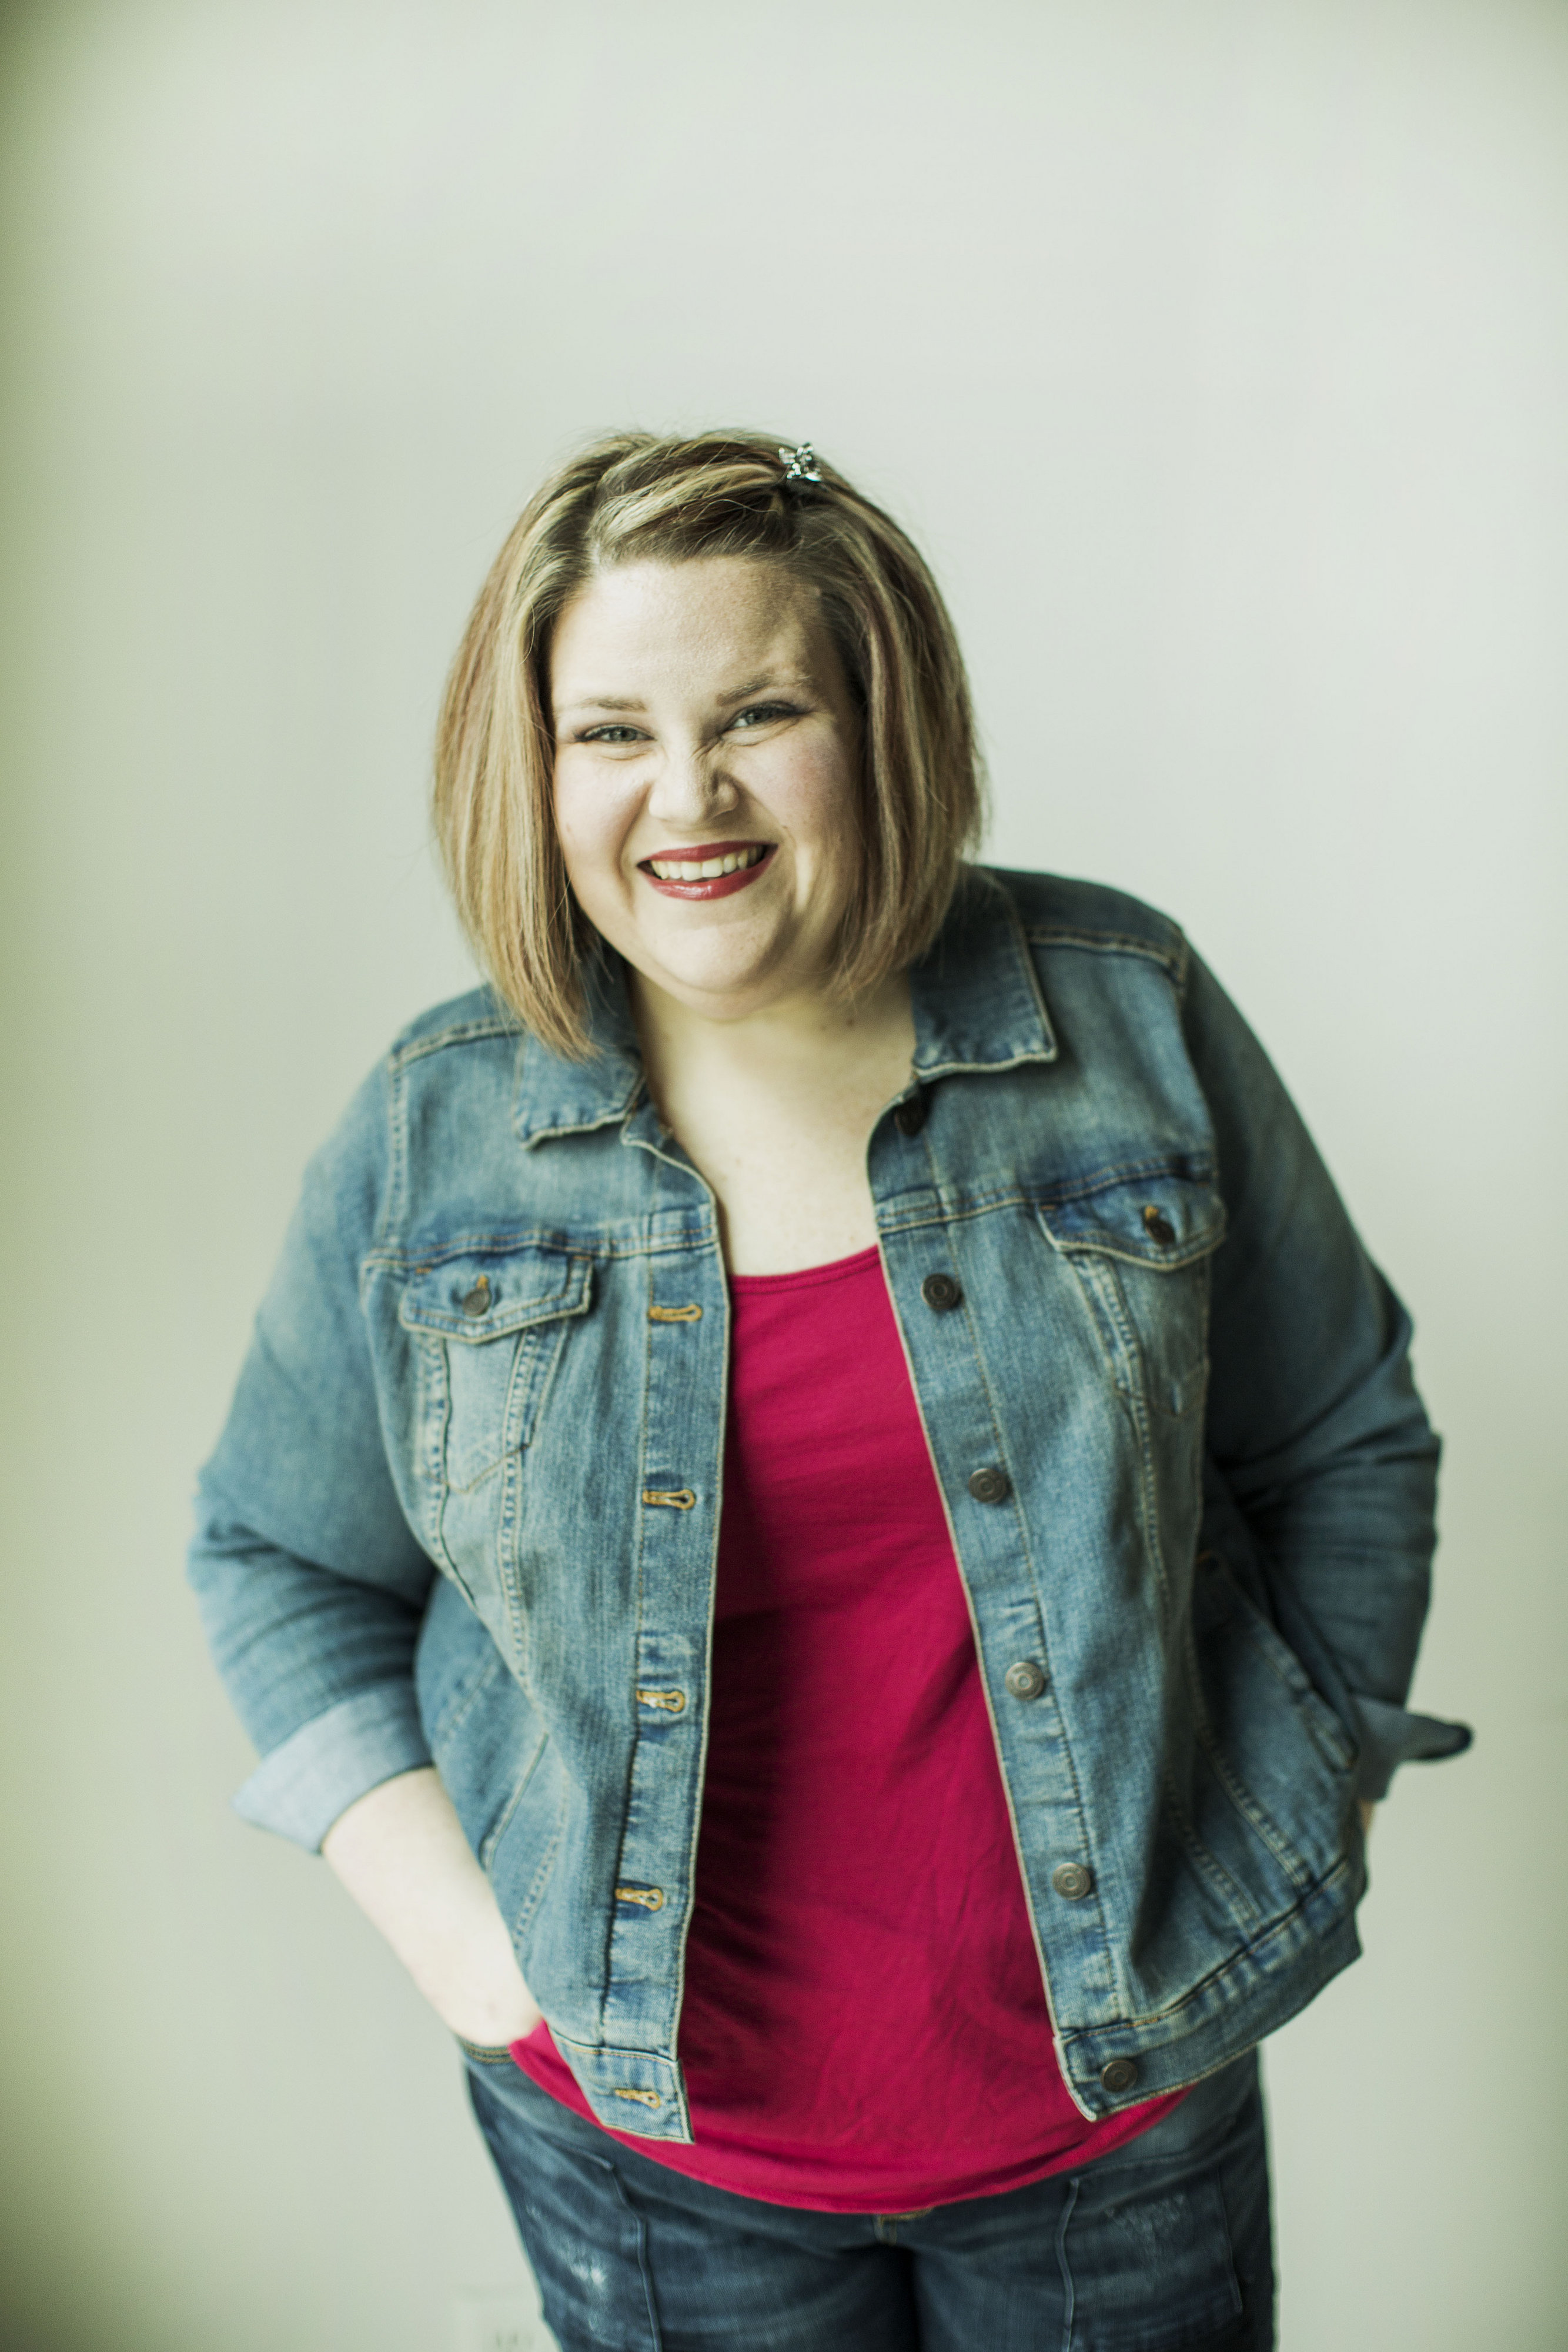 Chewbacca Mom, Candace Payne as featured on the Jesus Calling podcast